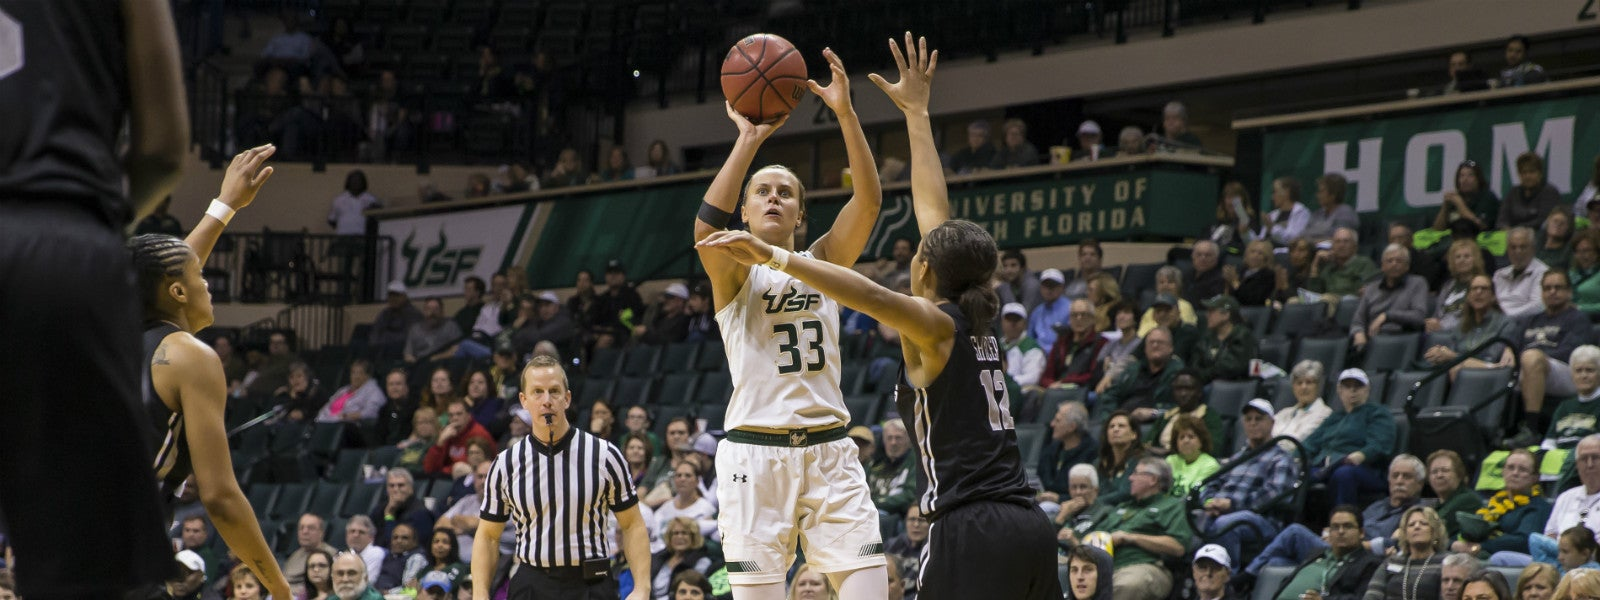 USF Women's Basketball vs. Houston